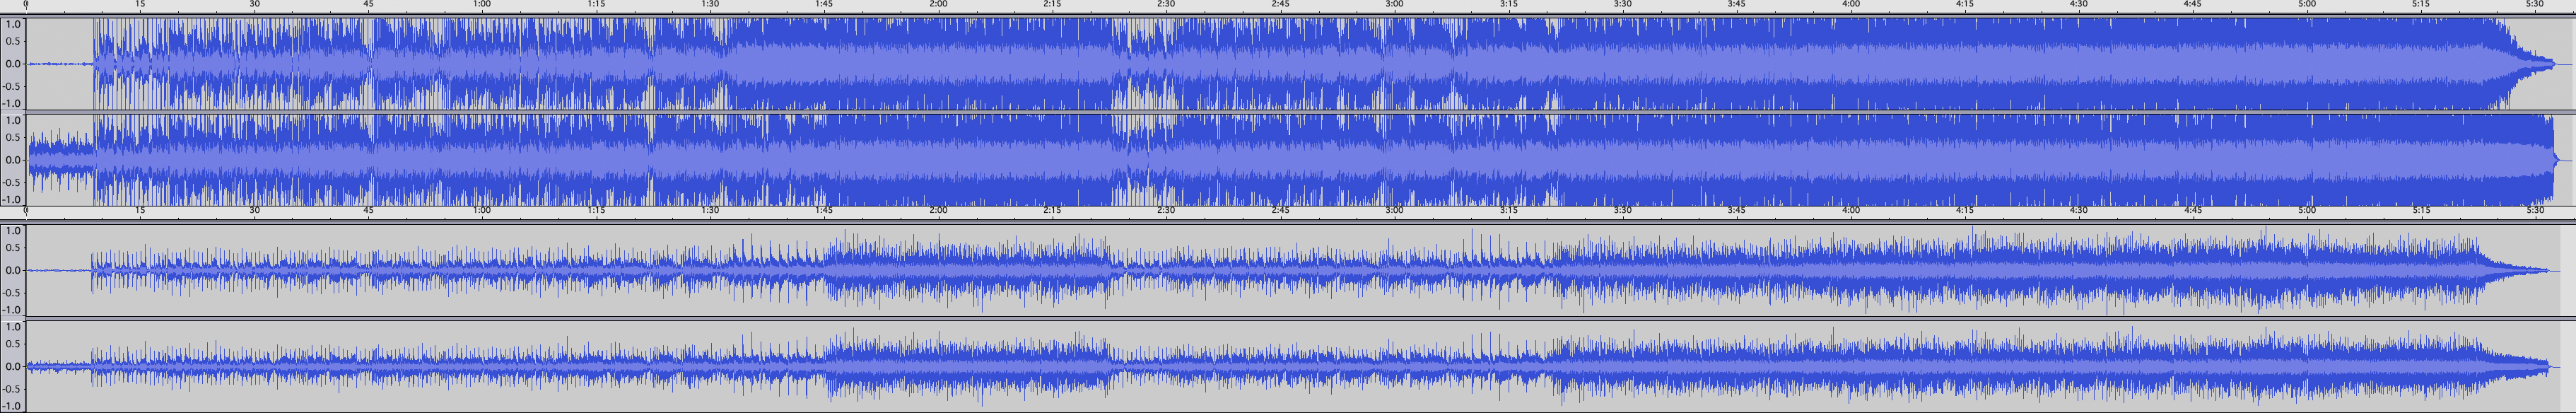 https://upload.wikimedia.org/wikipedia/commons/6/69/RHCP_Snow_Hey_Oh_waveform.png